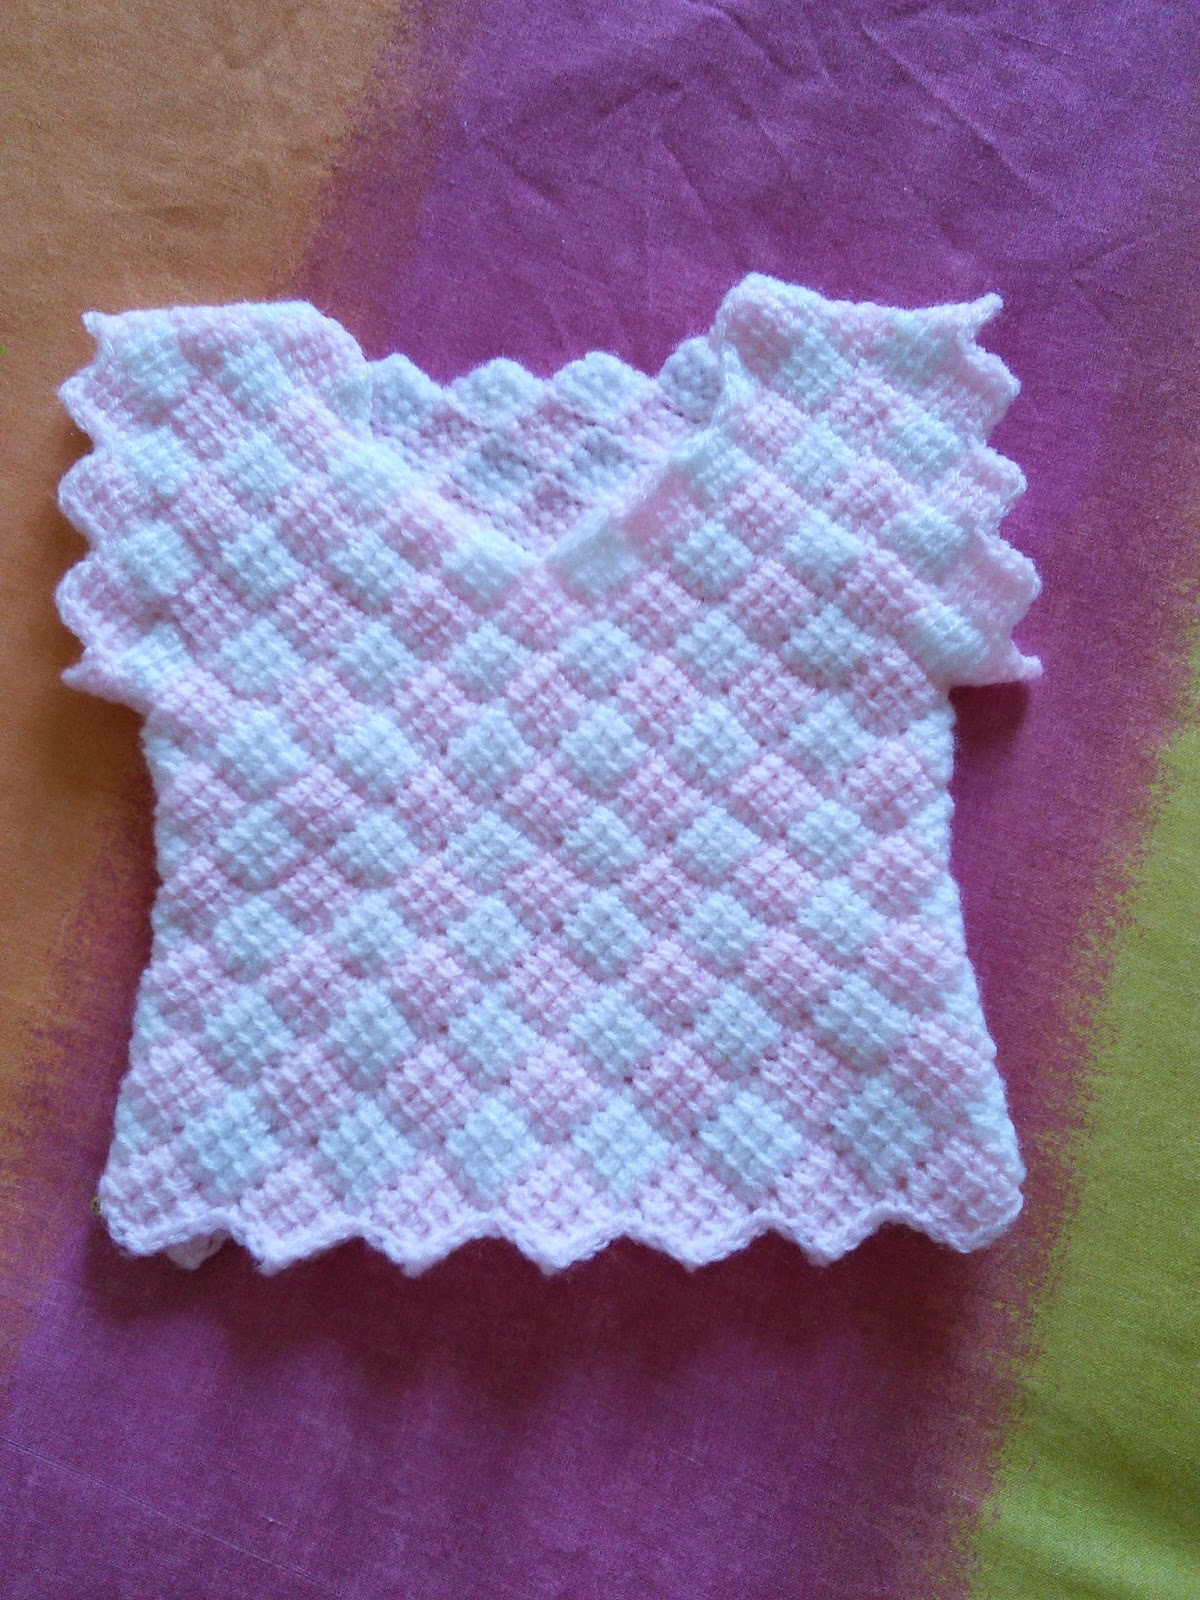 Entrelac crochet i have always enjoyed making baby clothes and managed to find a few patterns for baby clothes made in tunisian crochet but not entrelac bankloansurffo Gallery